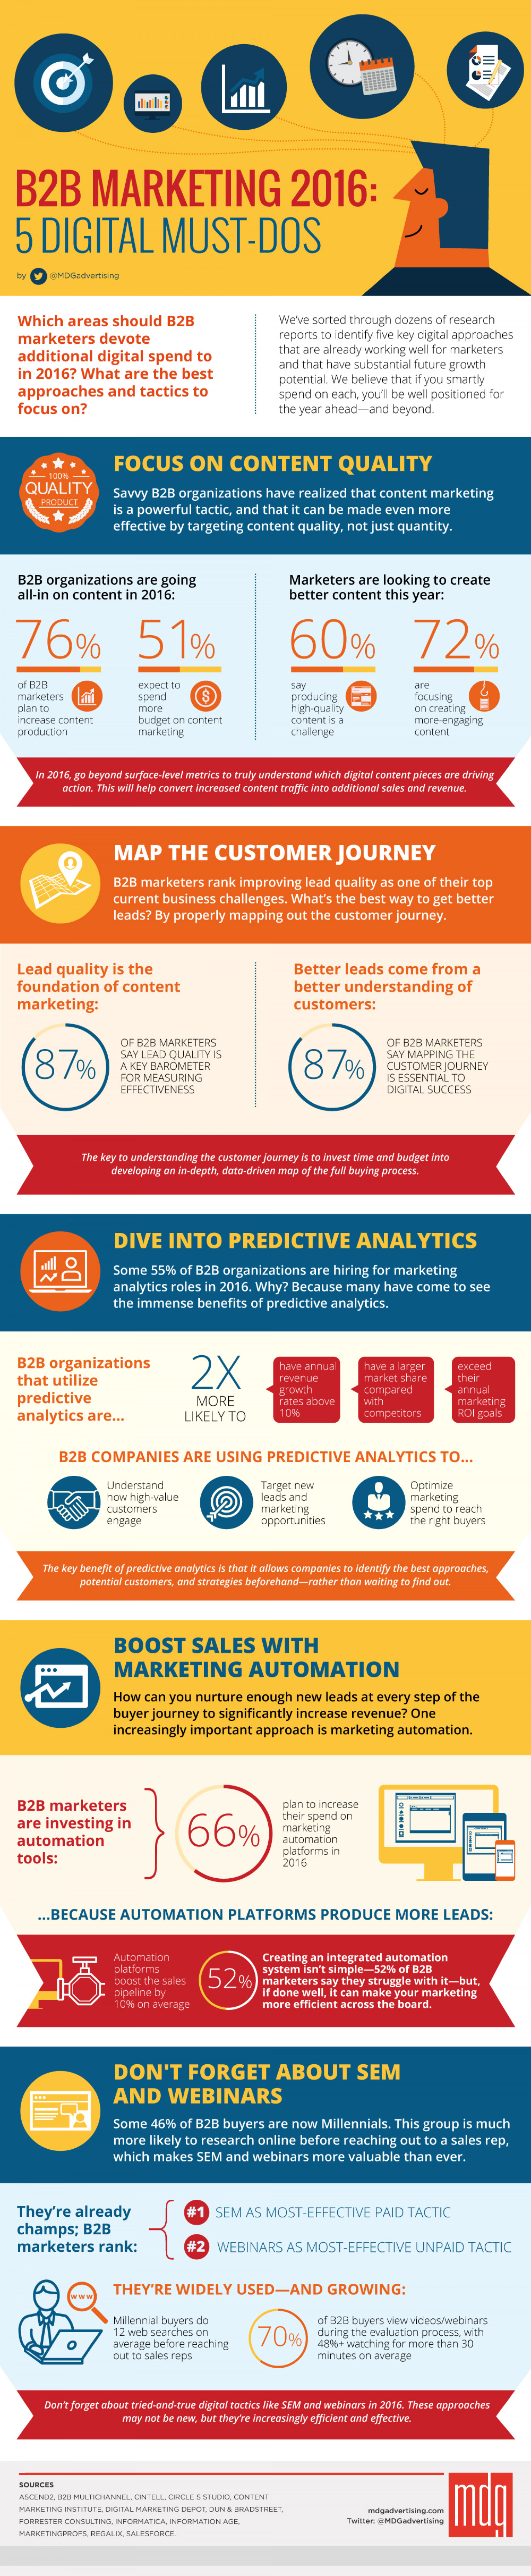 B2B Marketing 2016: 5 Digital Must-Dos [Infographic] Infographic